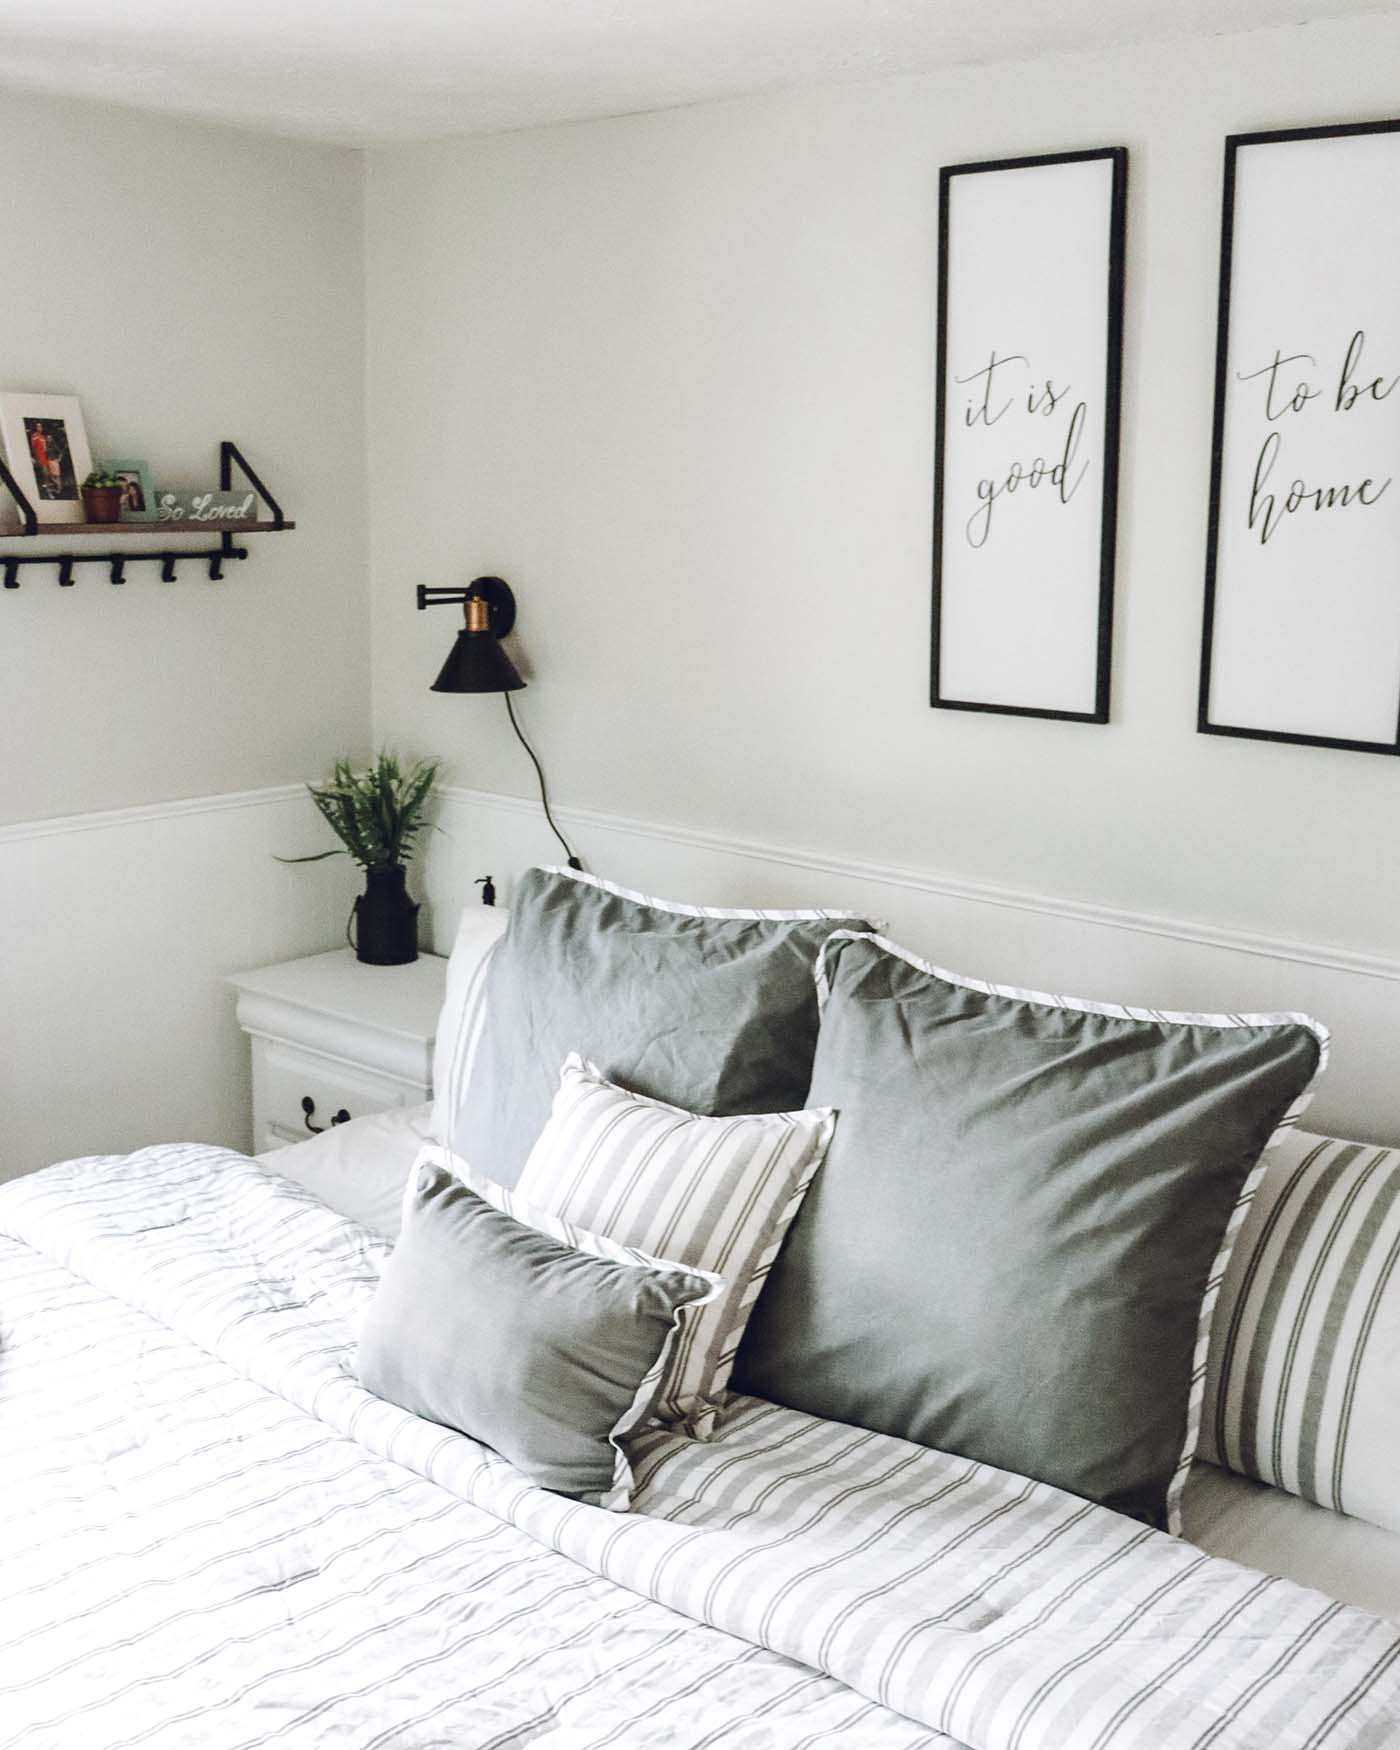 This sweet surprise makeover will warm your heart — and inspire you to upgrade your spaces. Get affordable home decor ideas here!